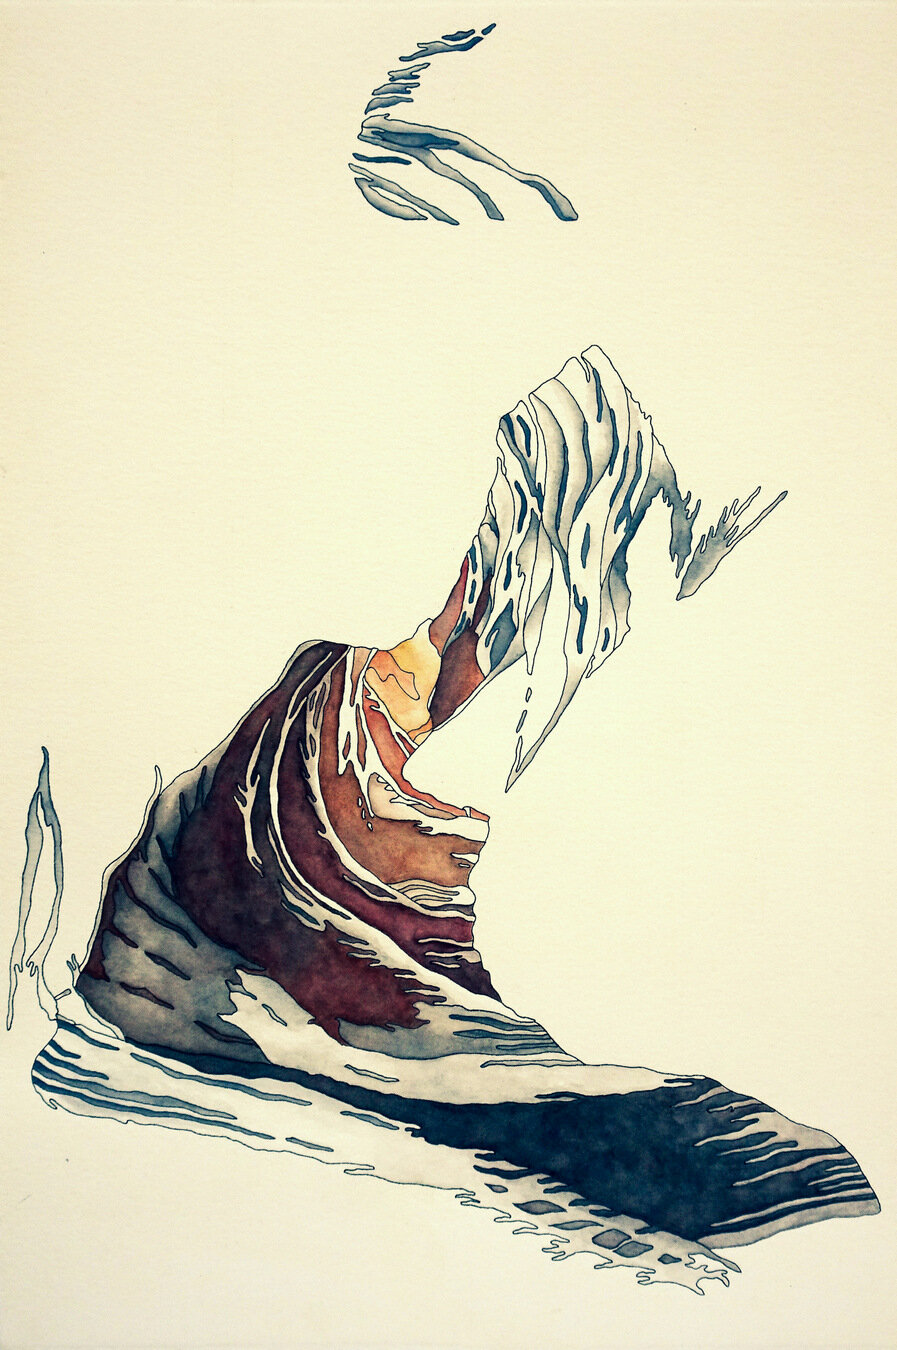 ANTELOPE CANYON ~ WINTER, watercolor & ink on archival paper, 22 x 15 inches